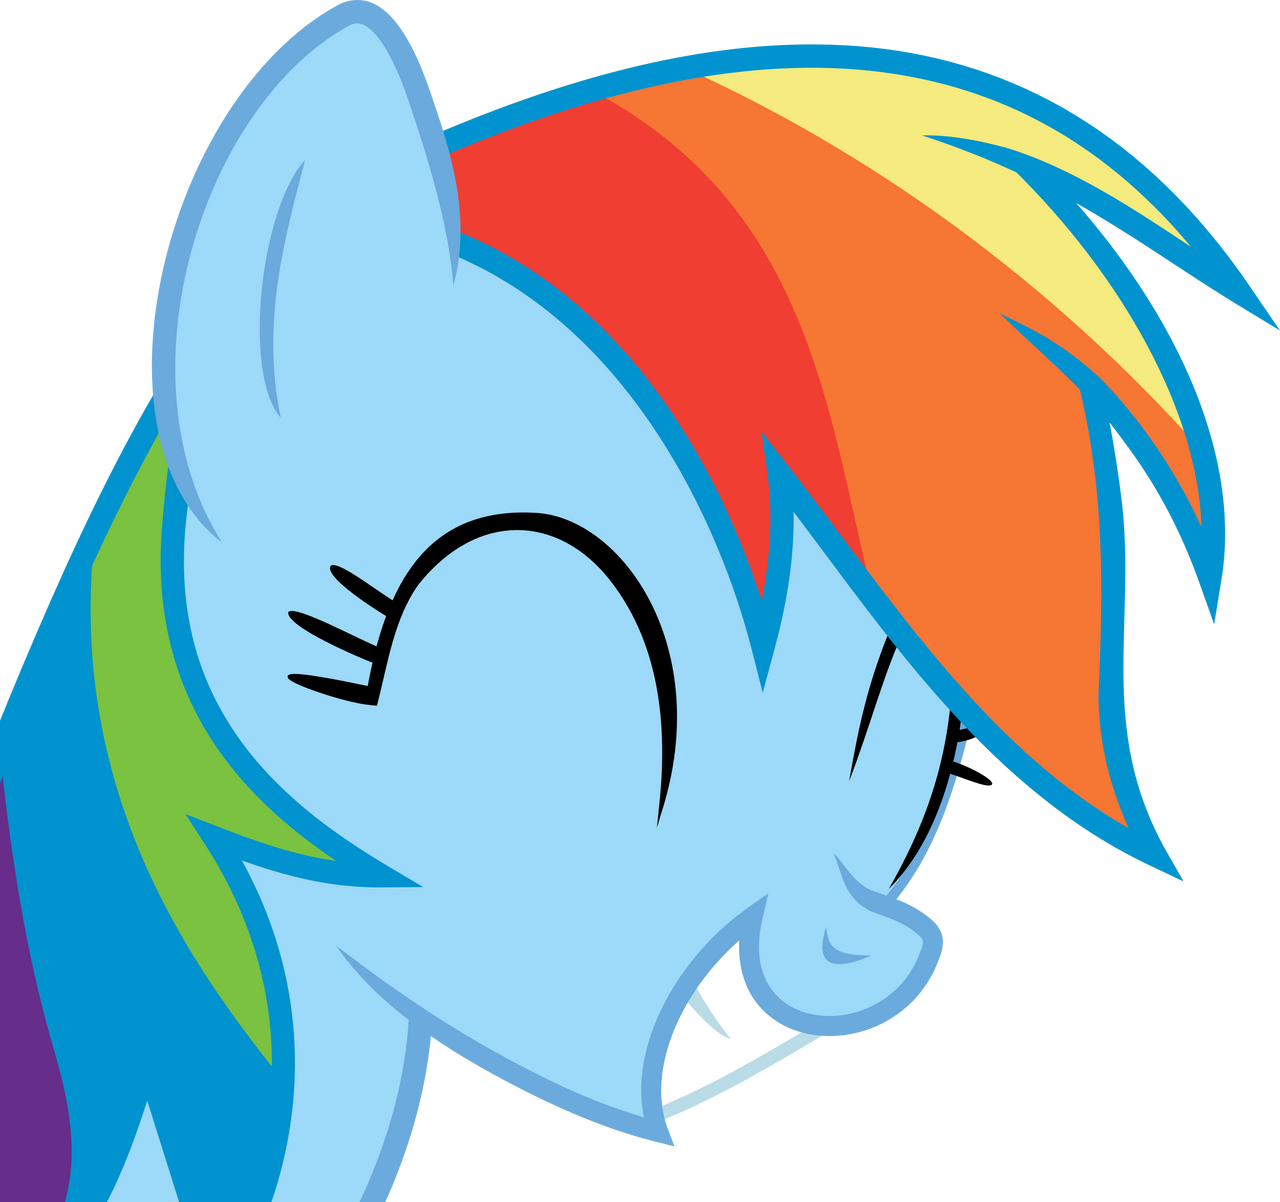 rainbow_dash_agrees_with_a_smile__by_can